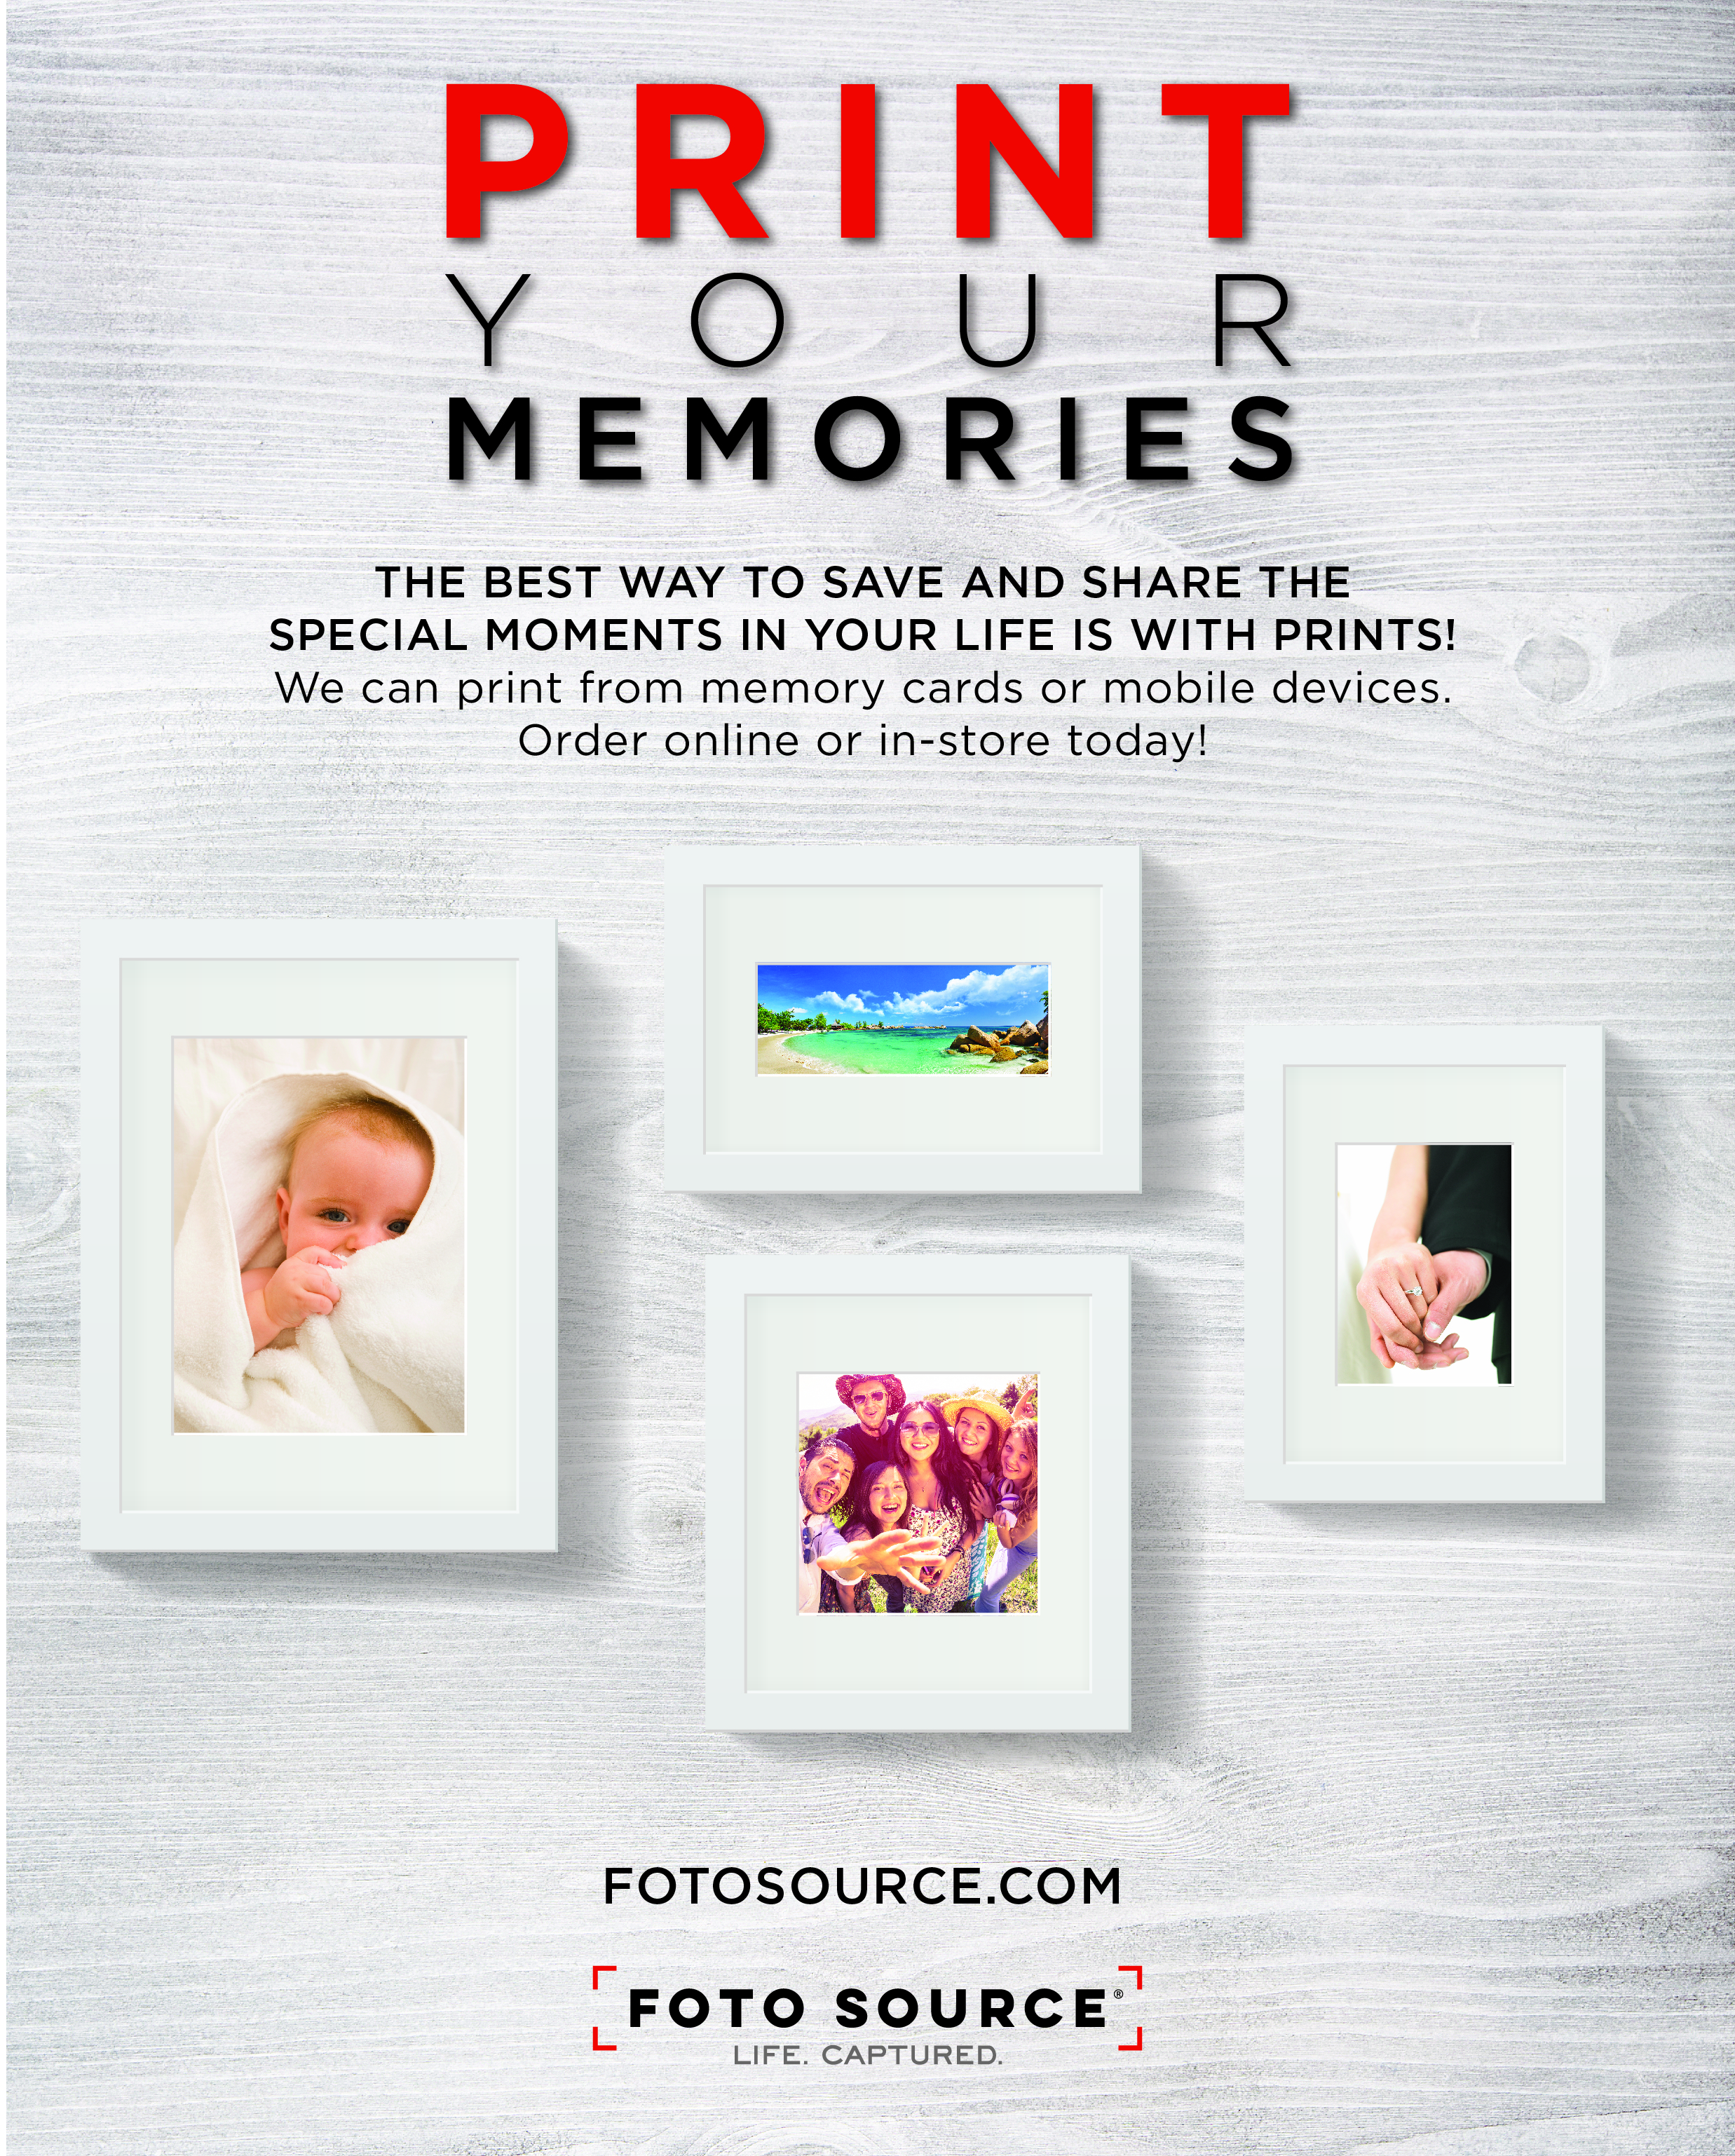 16x20 Print Poster for Foto Source